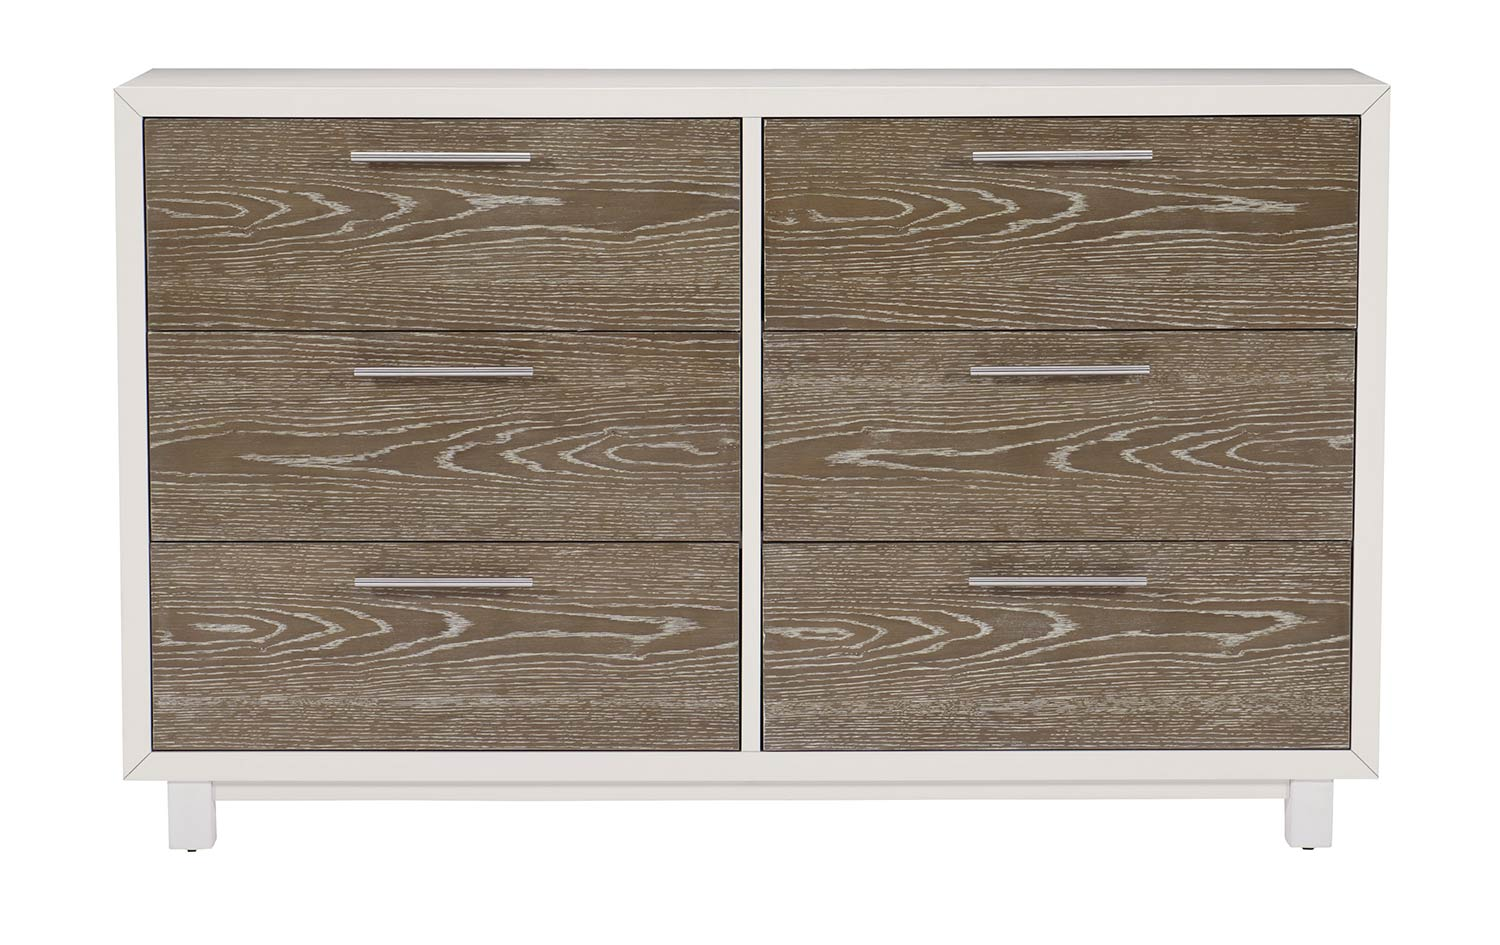 Homelegance Renly Dresser - Natural Finish of Oak Veneer with White Framing